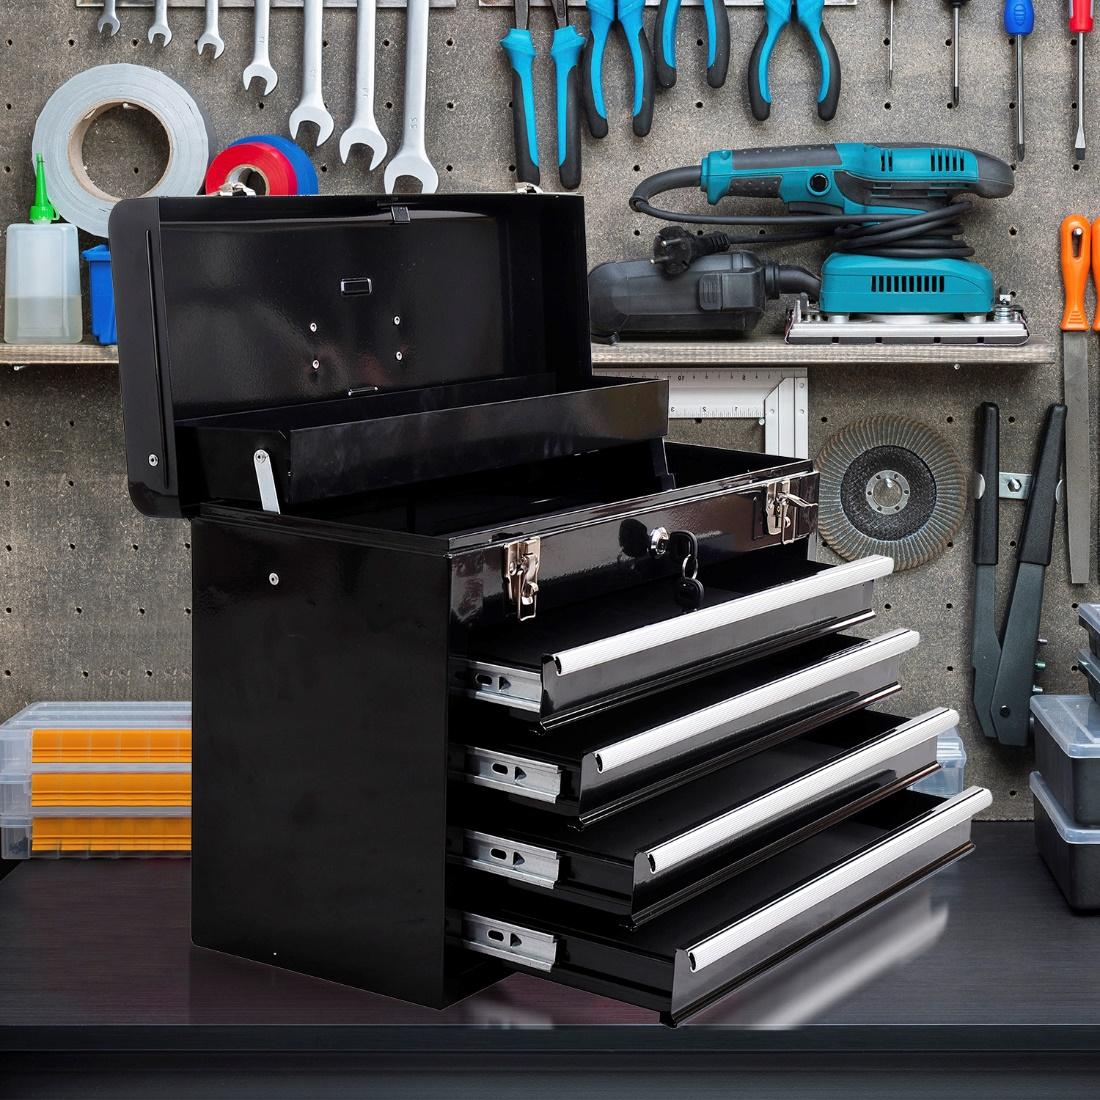 storage/toolbox - Tools You Must Have in Your Garage